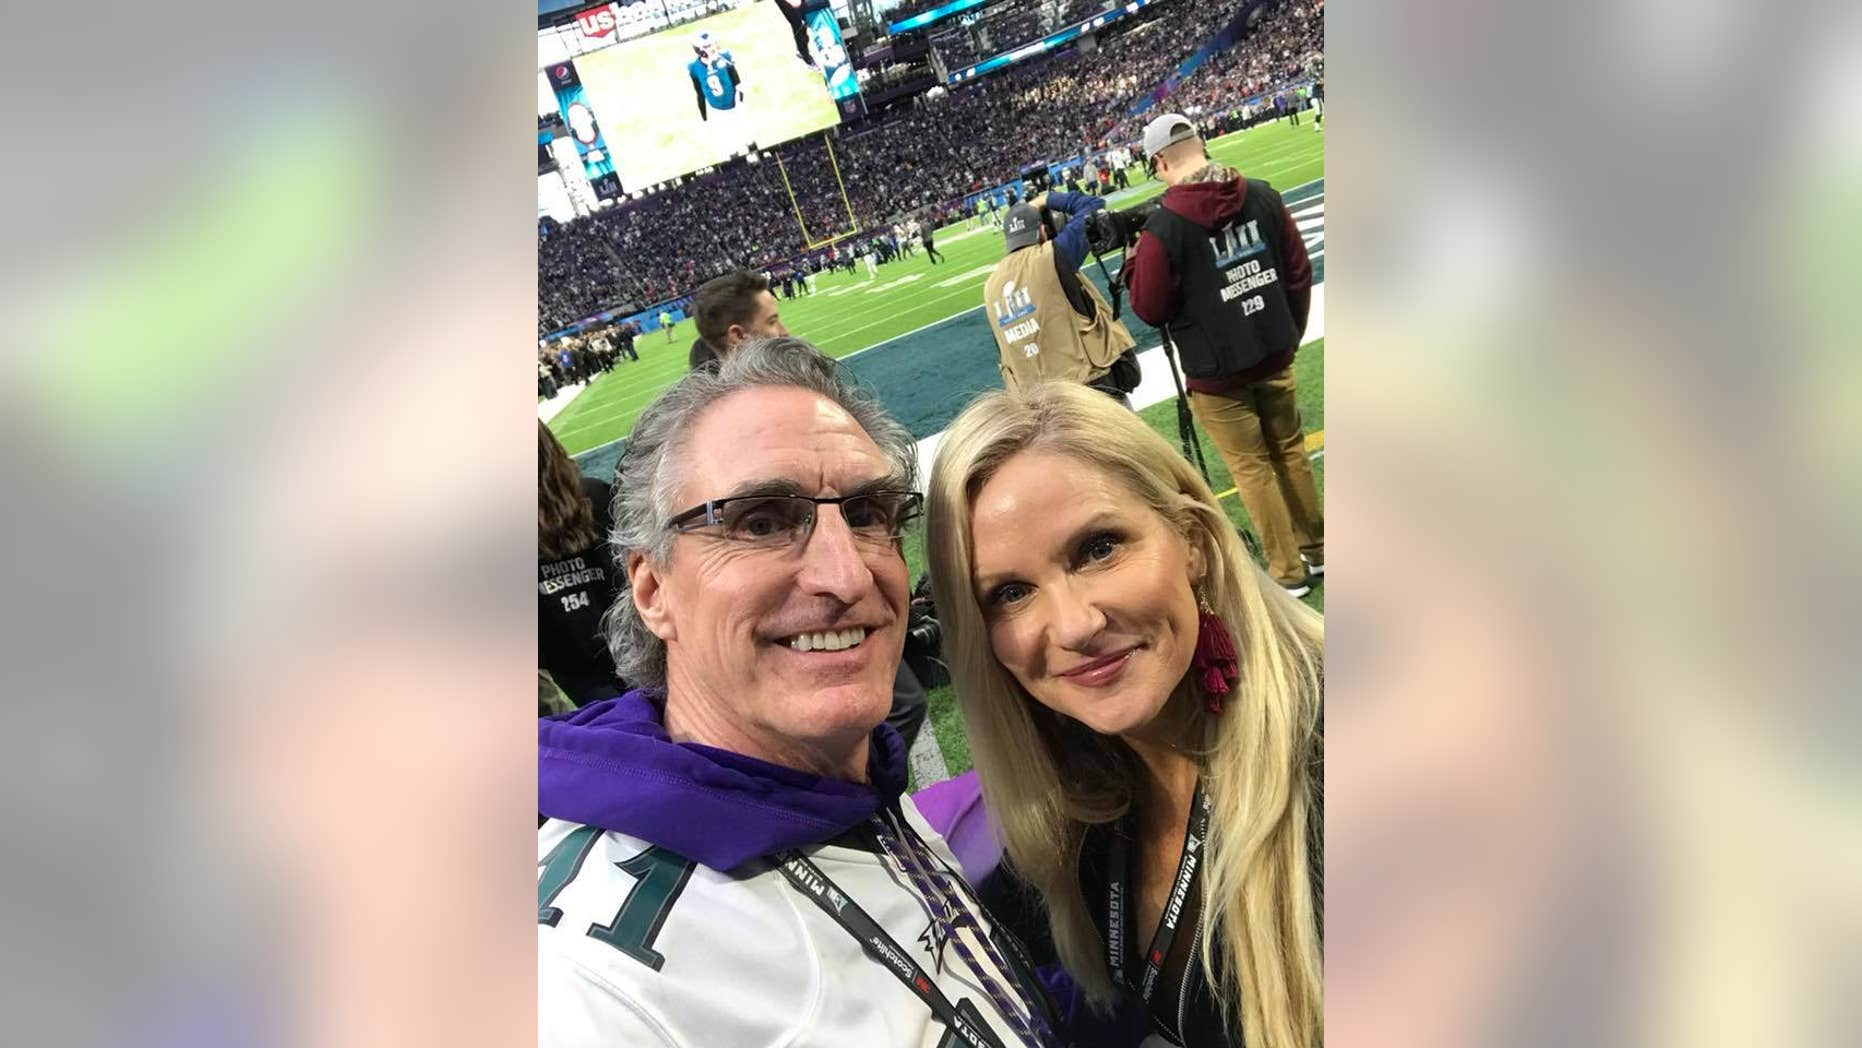 North Dakota Gov. Doug Burgum and his wife were criticized for watching the Super Bowl from a suite provided by the energy company Xcel.